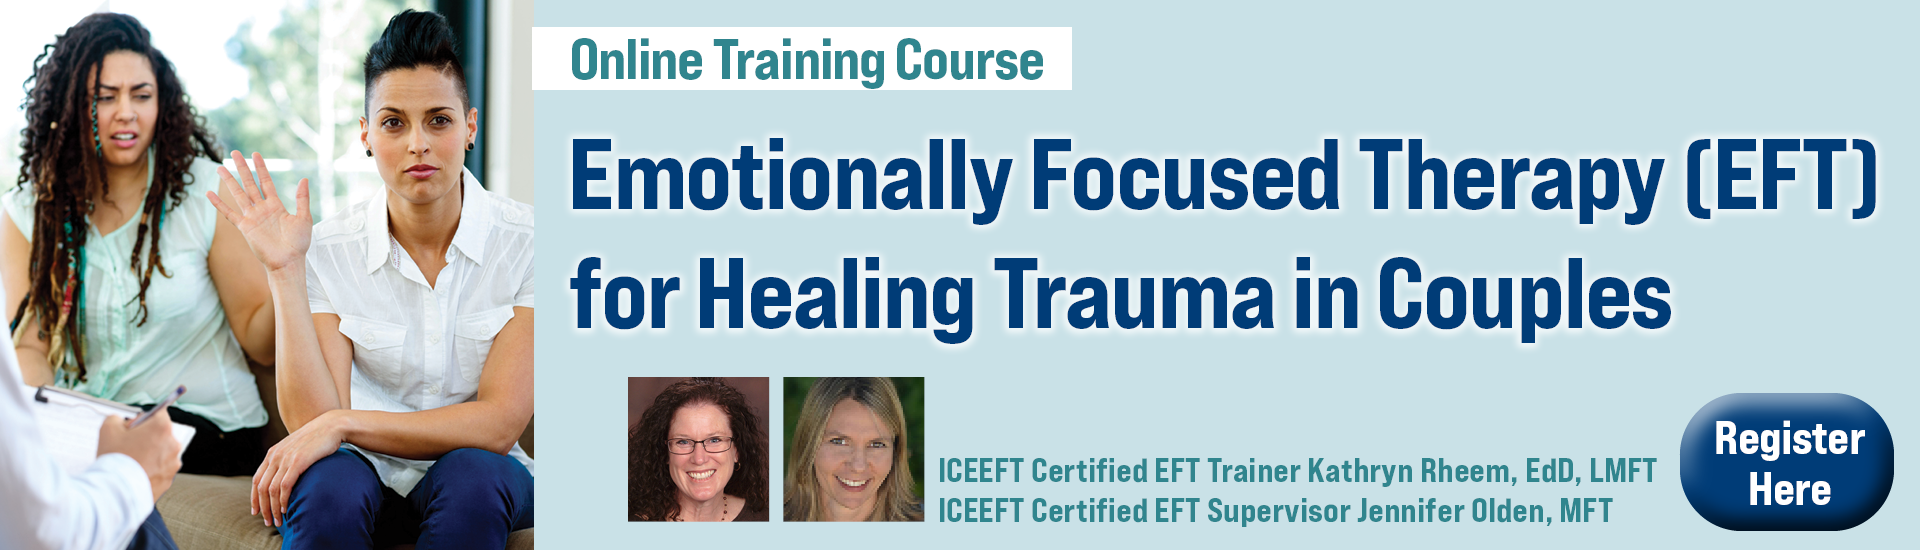 Emotionally Focused Therapy (EFT) for Healing Trauma in Couples